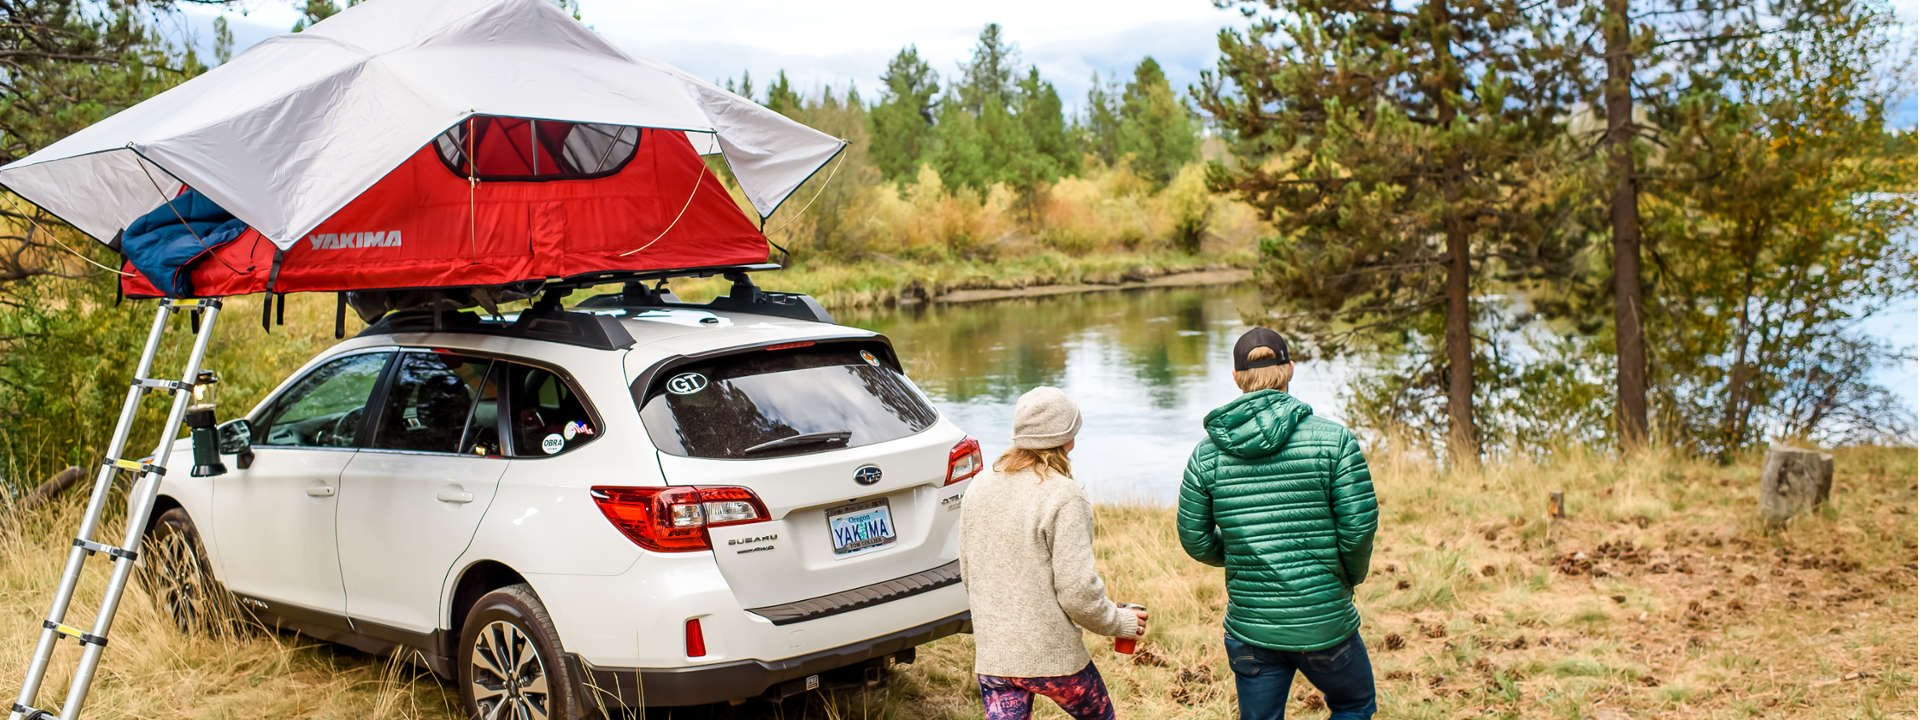 Yakima Roof Top Tents on Sale until February 29th